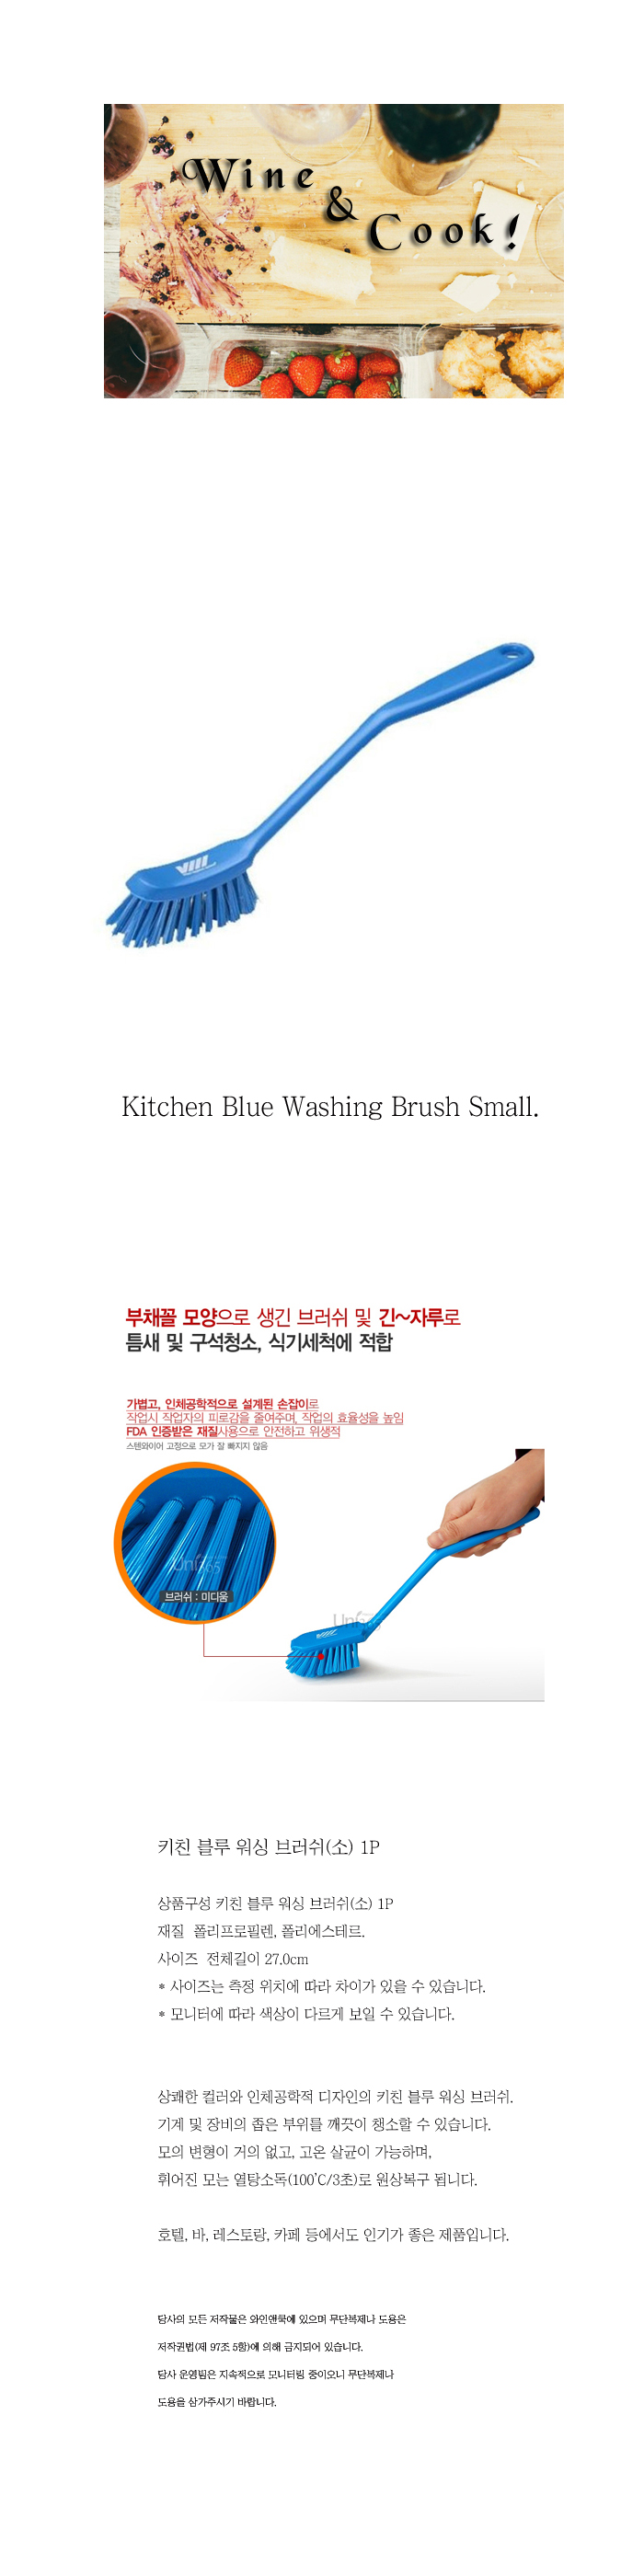 [ WINEQOK ] Kitchen Blue Washing Brush (Small) 1P